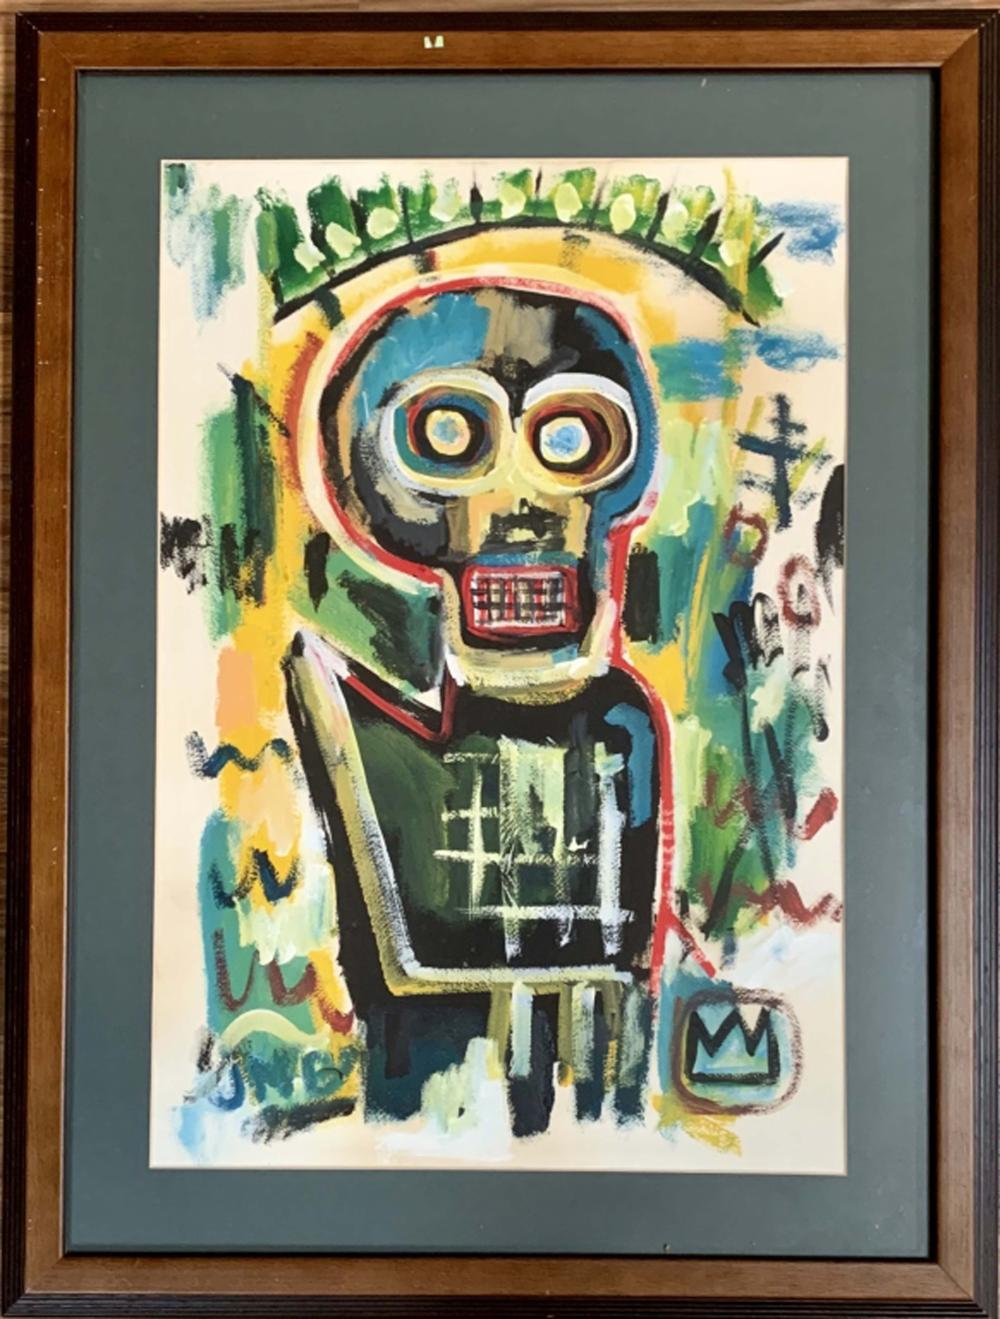 Lot 31: JEAN-MICHEL BASQUIAT FIGURATIVE ACRYLIC V$14,000